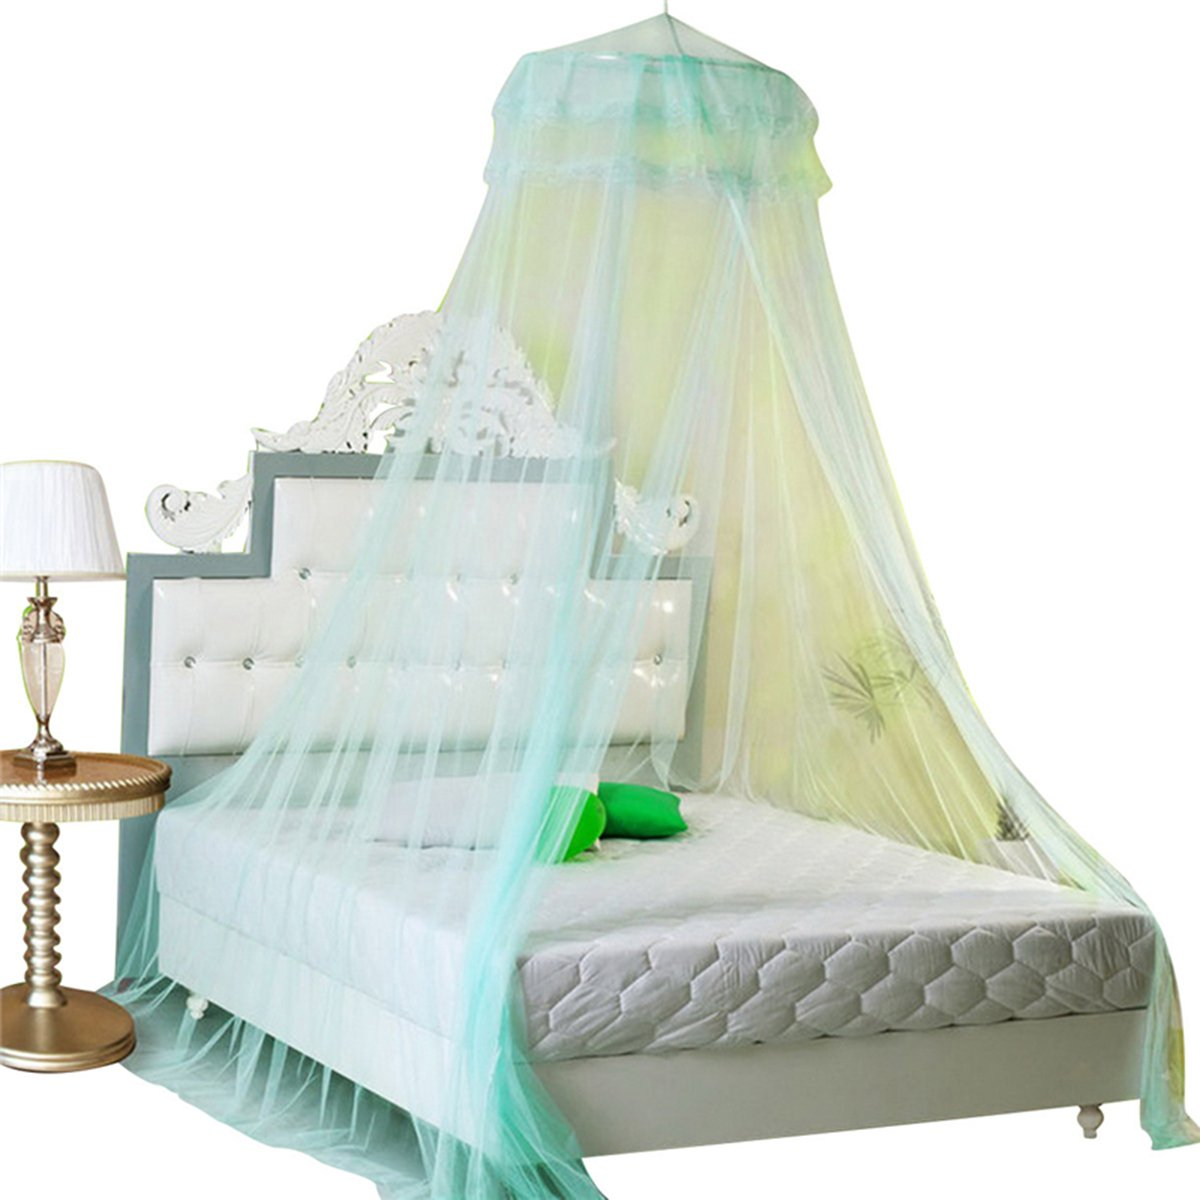 HOUSWEETY New Round Lace Curtain Dome Bed Canopy Netting Princess Mosquito Net (Aqua Green) HOUSWEETYG00613-0